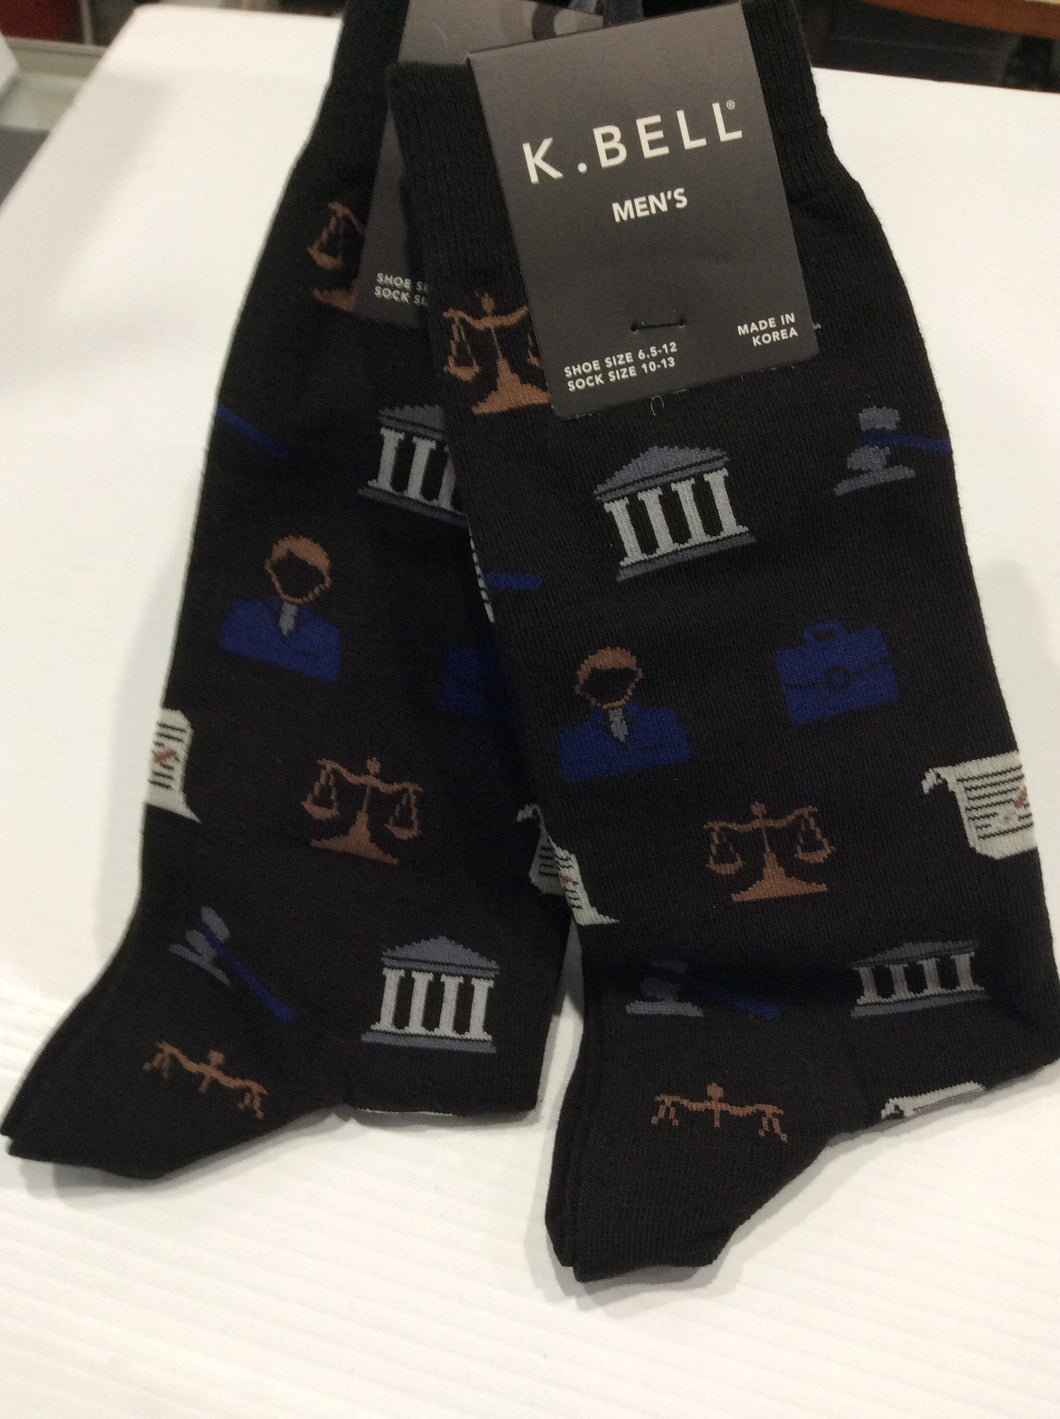 Men's LEGAL Socks